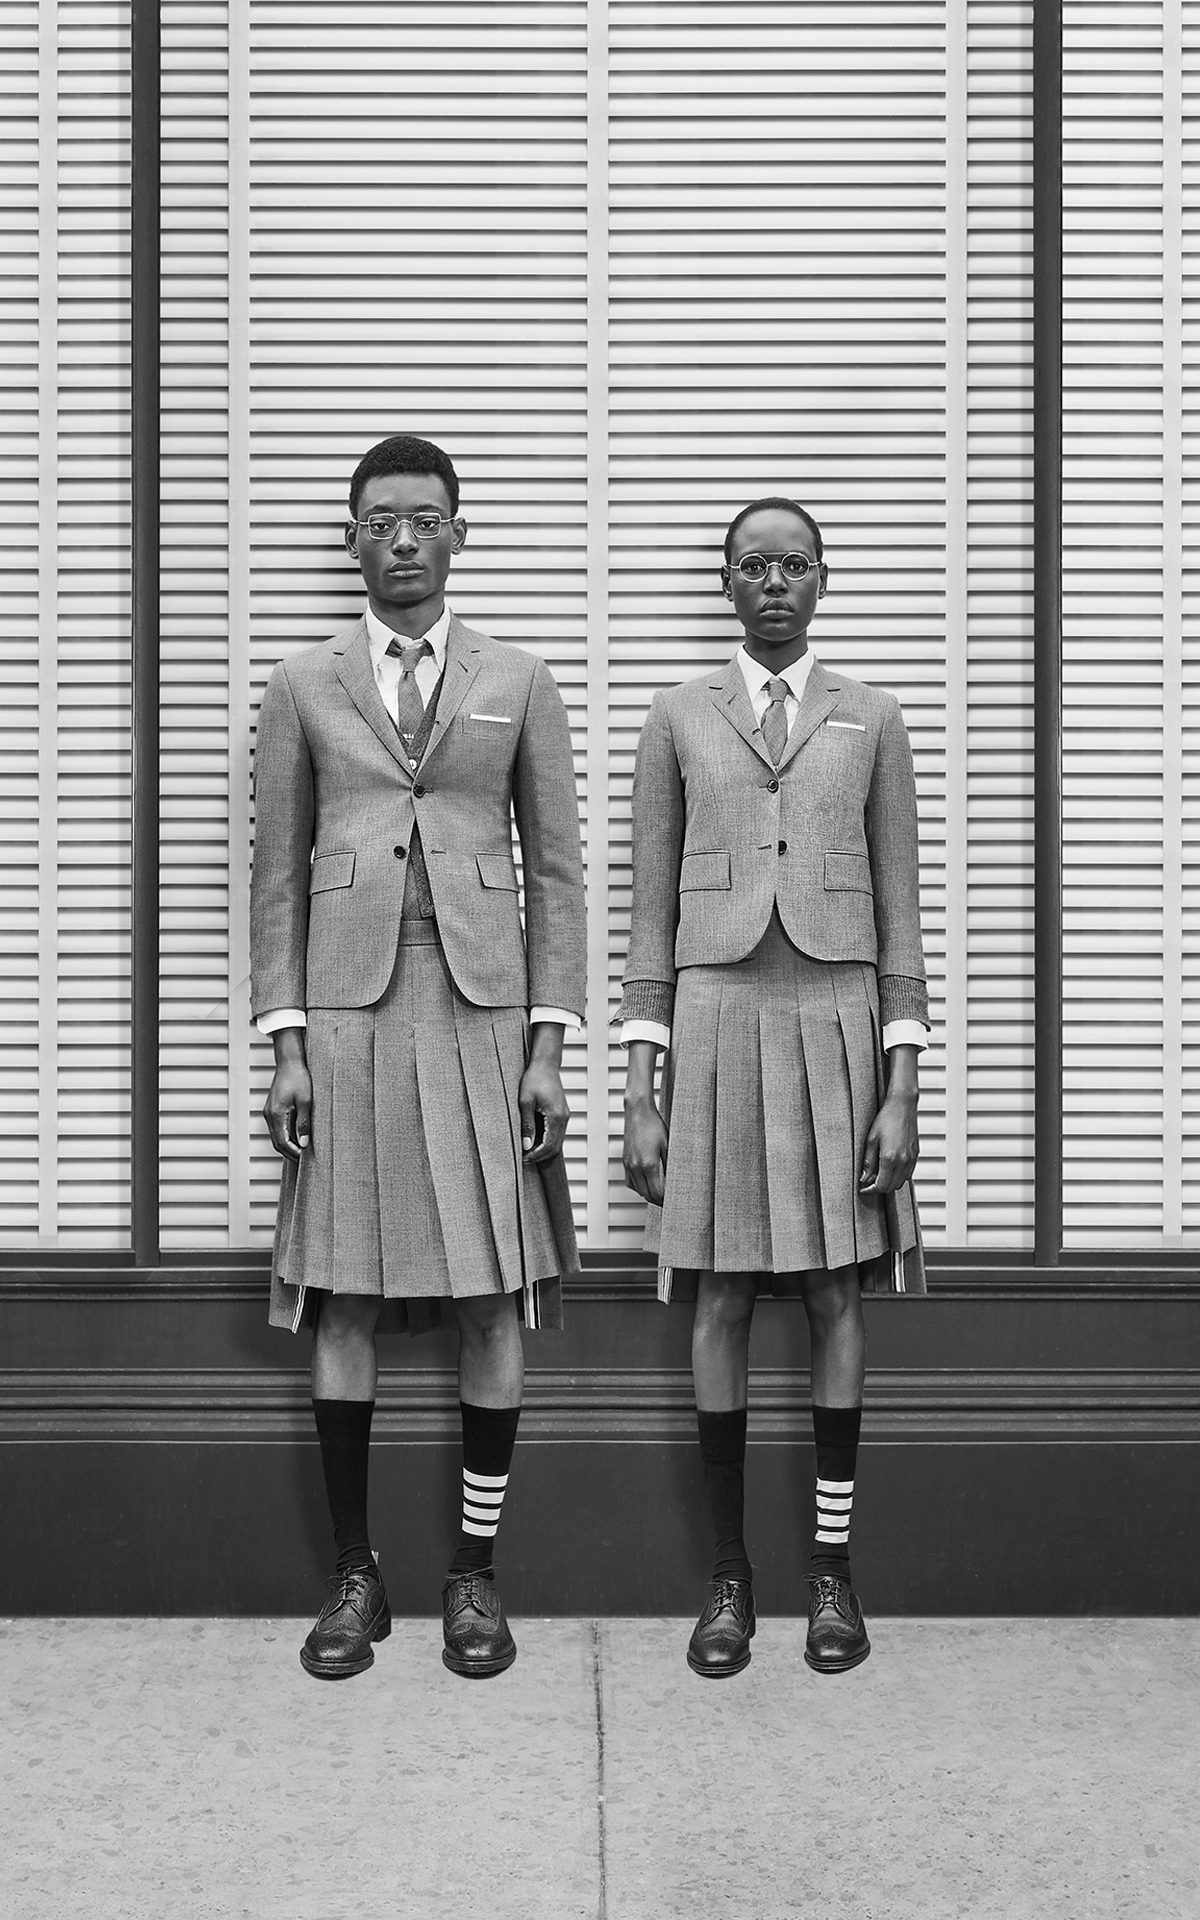 Thom Browne main image Bicester Village